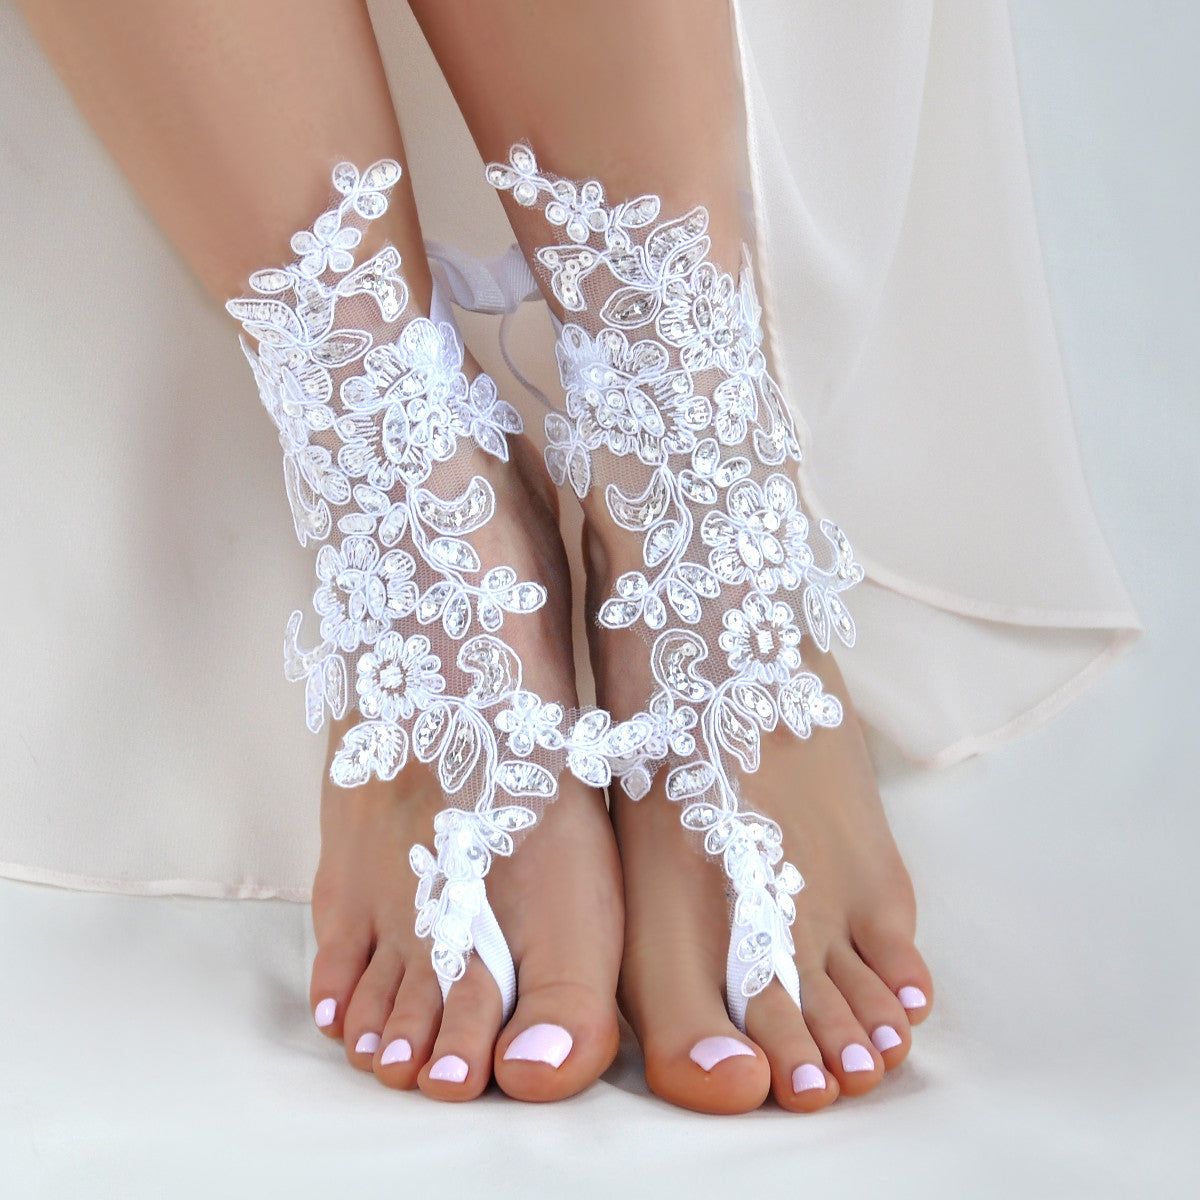 c6b0f93137a Lace barefoot sandals foot jewelry for beach or destination wedding ...